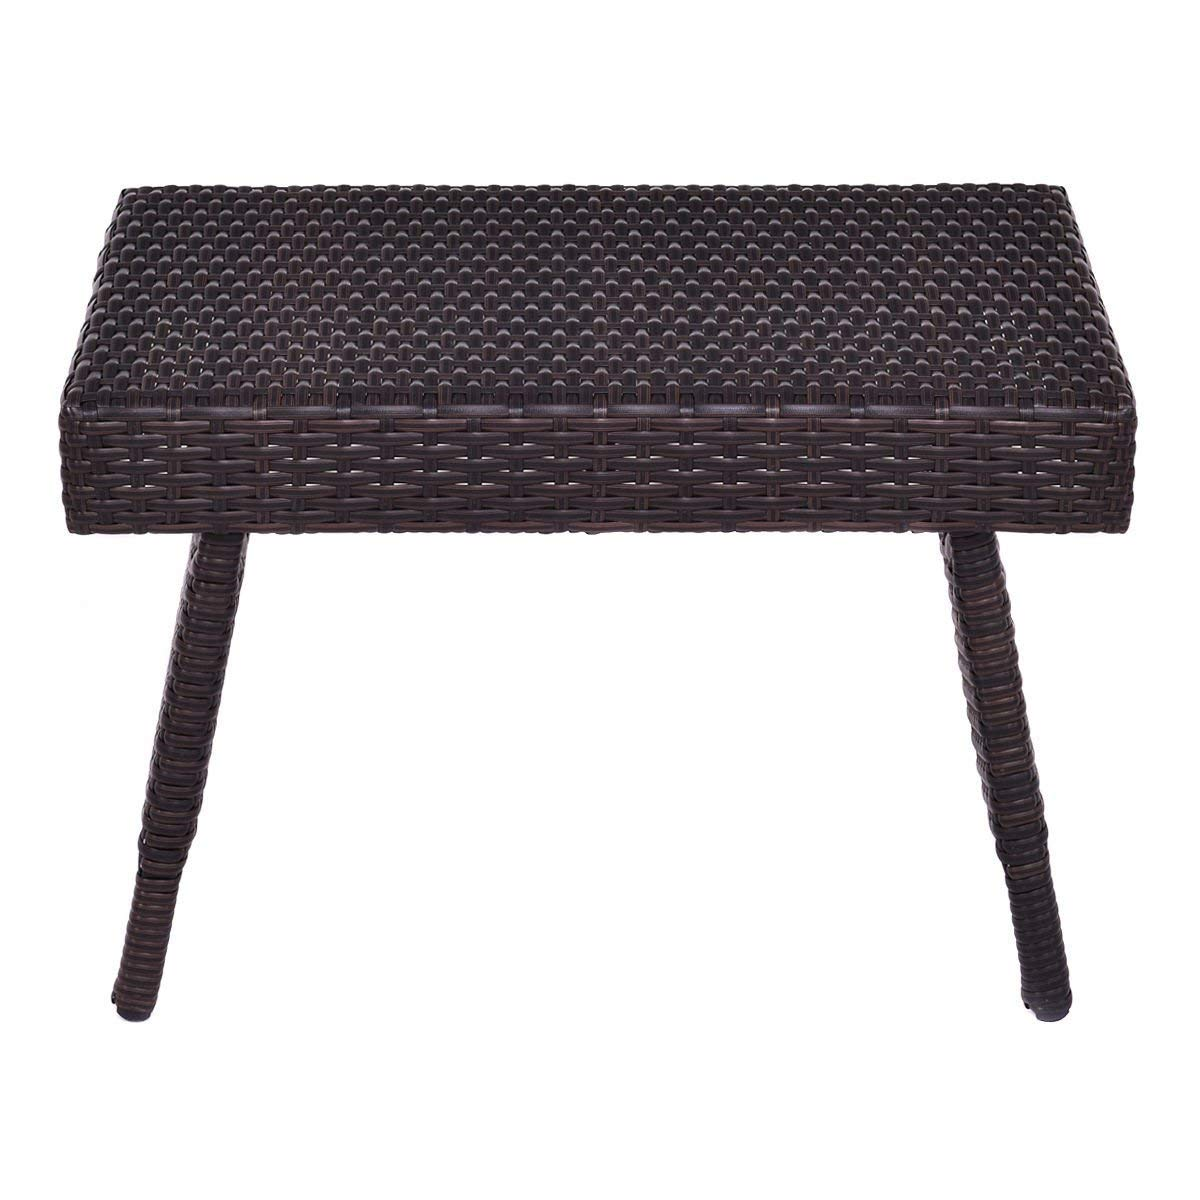 tangkula outdoor wicker table patio poolside lawn foldable accent brown garden rattan steel frame folding standing coffee side unique entryway tables doll furniture wall file